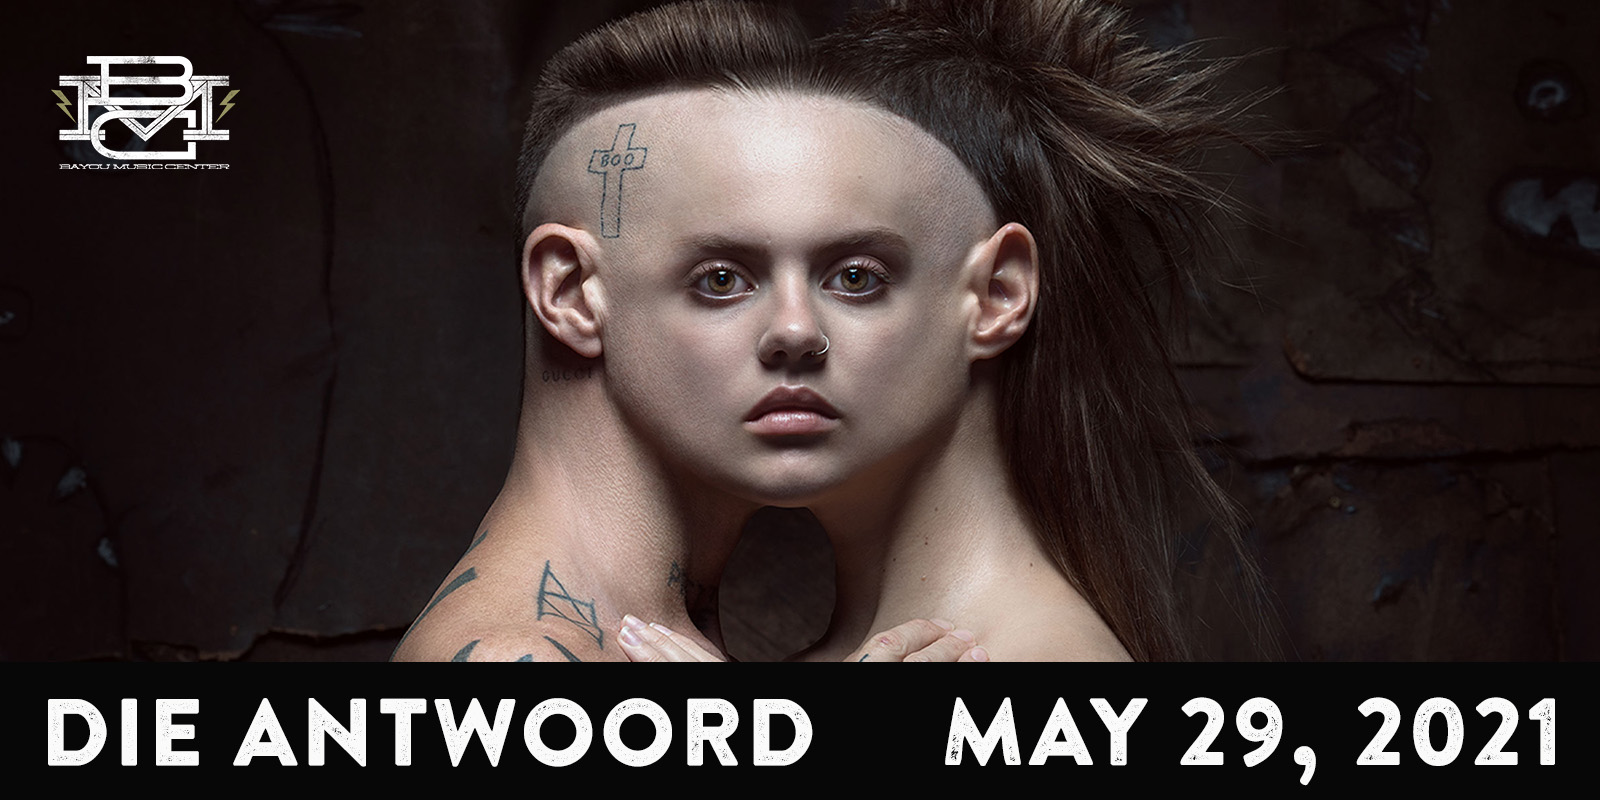 Die Antwoord - House of Zef USA Tour